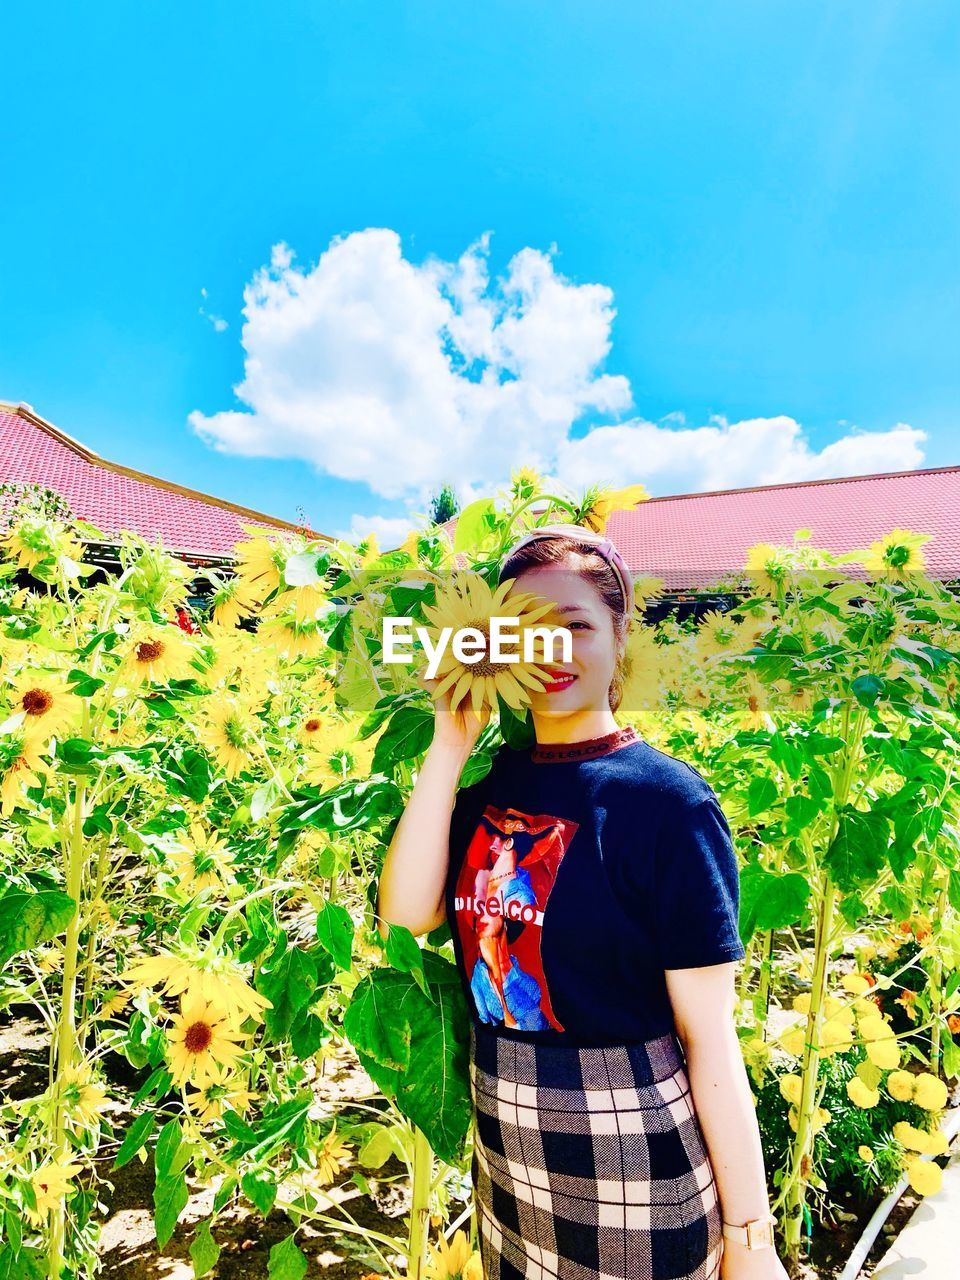 plant, young adult, one person, leisure activity, real people, young women, standing, lifestyles, growth, nature, flowering plant, flower, casual clothing, cloud - sky, beauty in nature, day, front view, sky, waist up, three quarter length, beautiful woman, outdoors, flower head, teenager